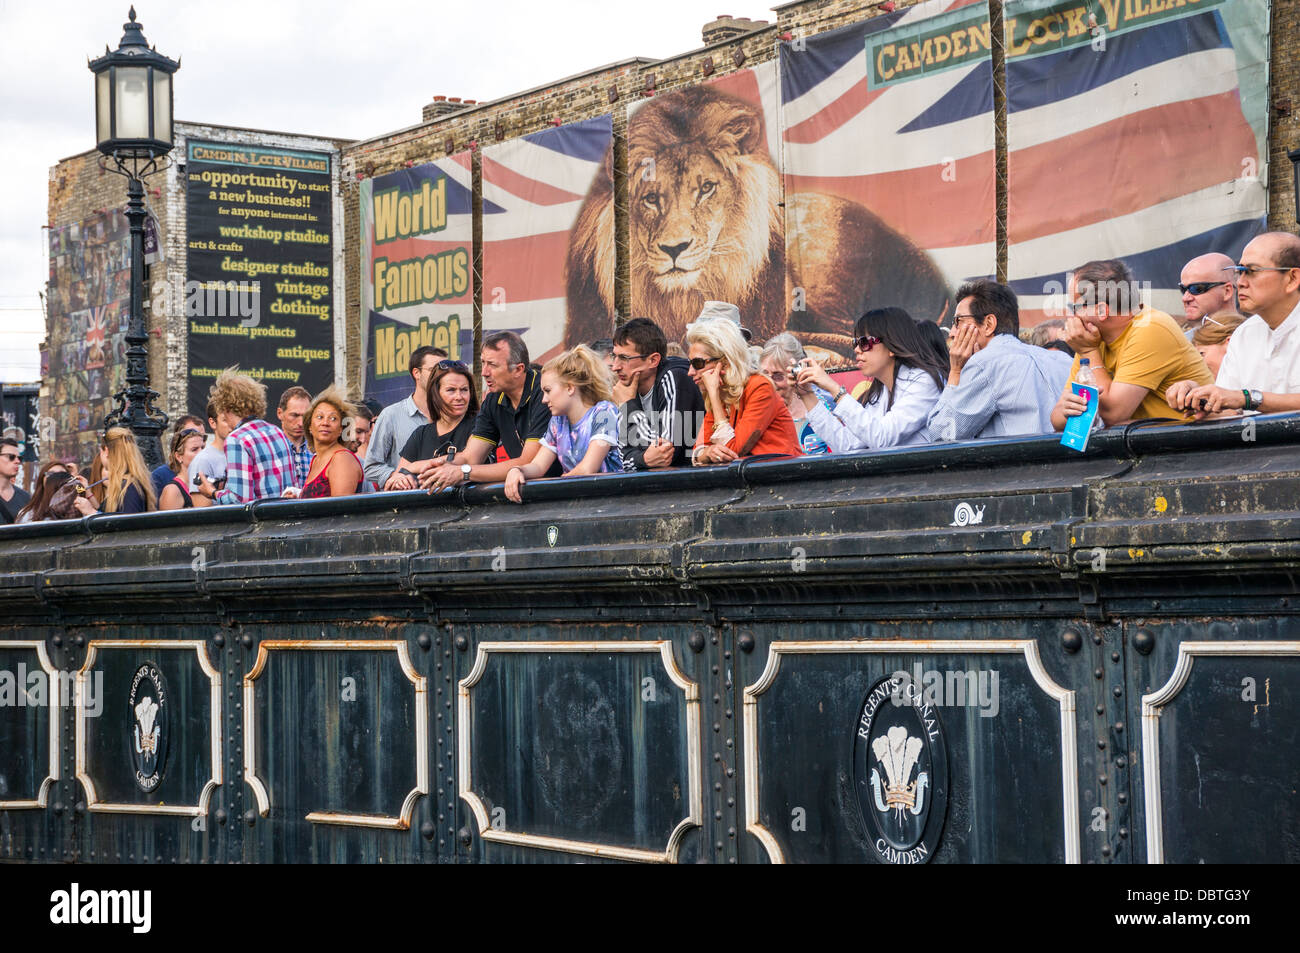 Sightseers on the Regents Canal bridge at Camden Lock, with a huge Union Jack and lion poster behind them, London, - Stock Image